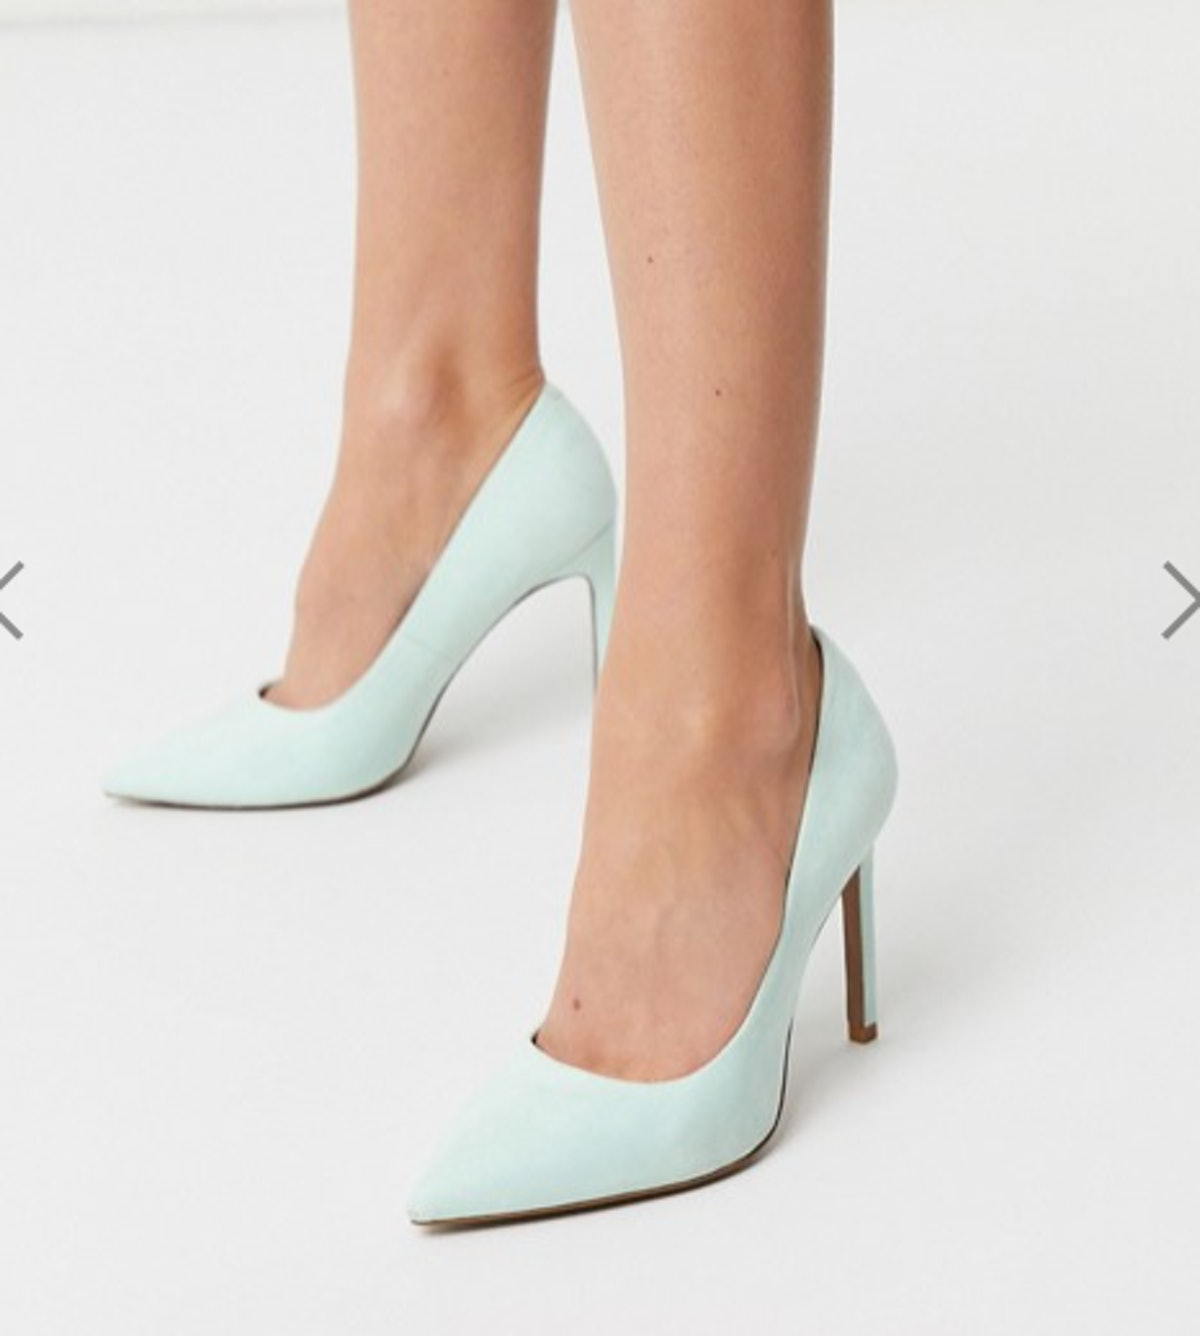 ASOS DESIGN Porto pointed high heeled pumps in peppermint green